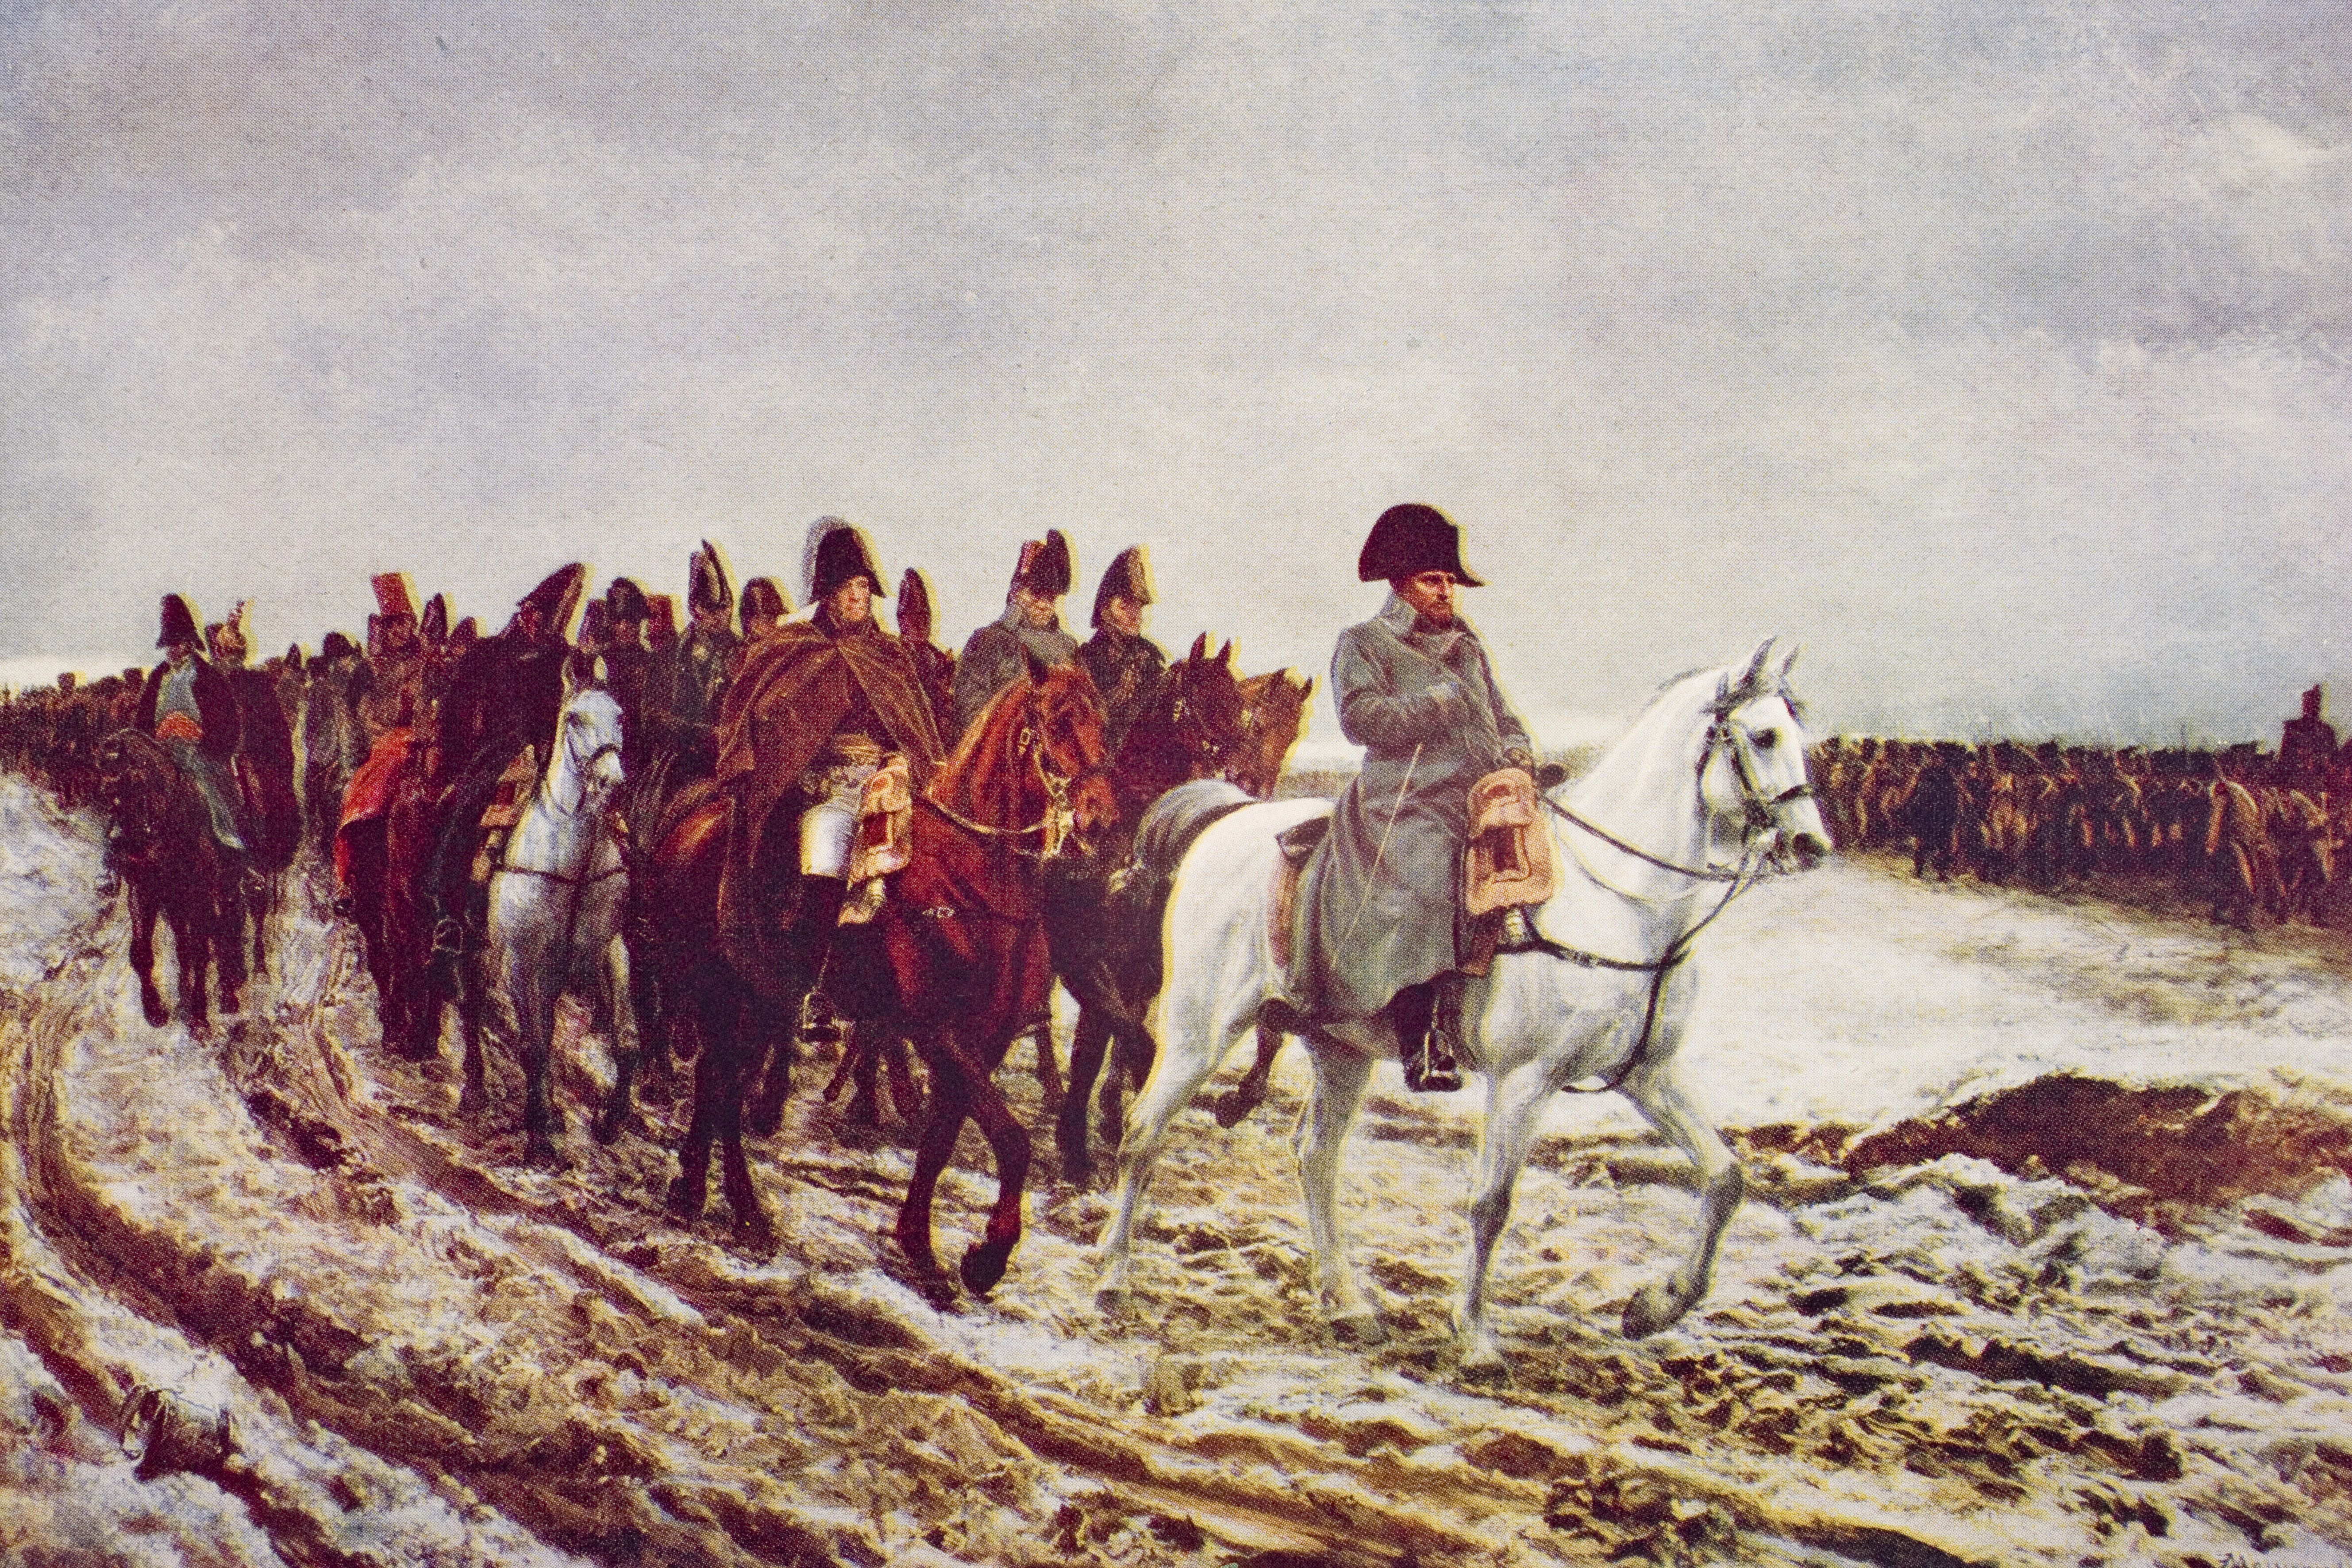 Napoleon Exiled To Elba Apr 11 1814 History Com Napoleon History Battle Of Borodino